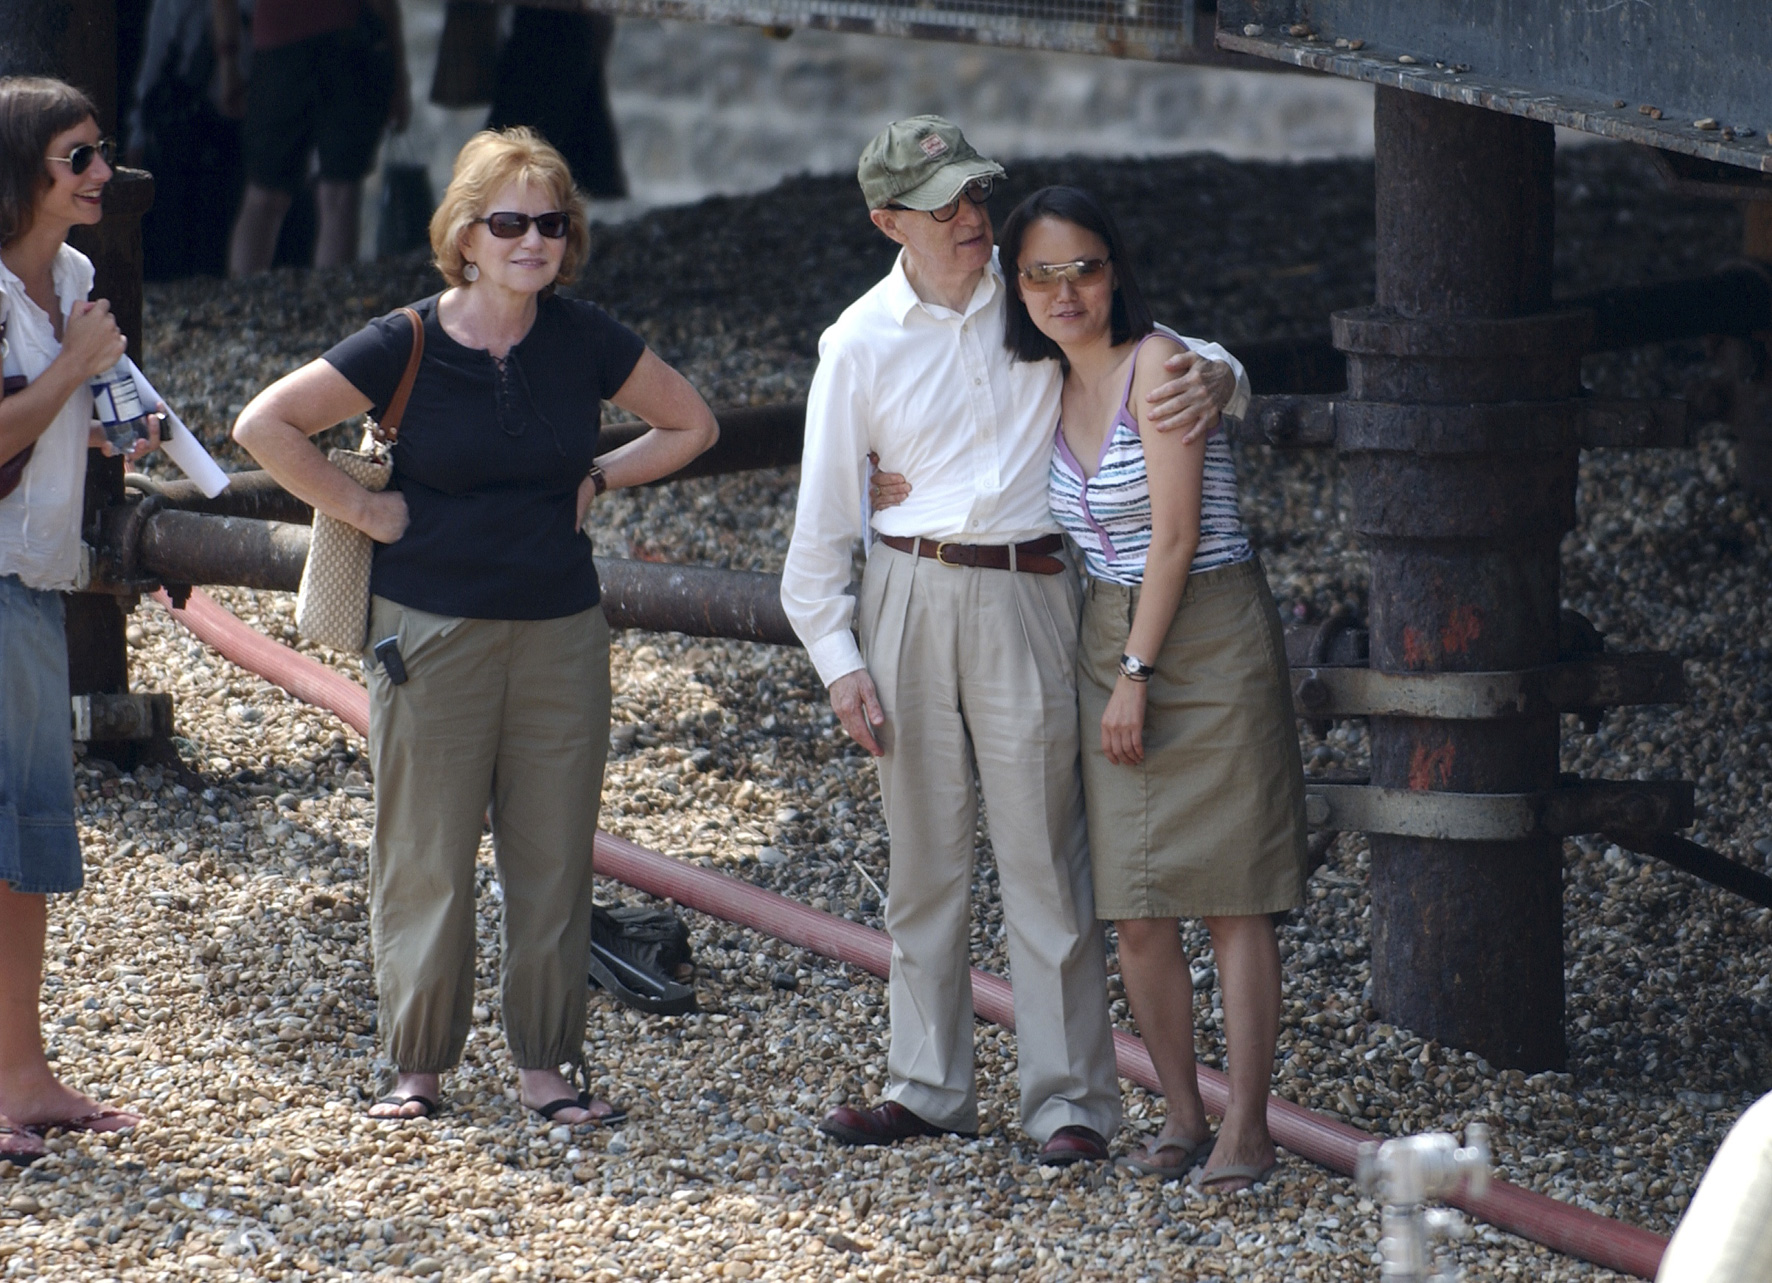 Woody Allen and wife Soon-Yi Previn on location in Brighton filming Cassandra's Dream - News